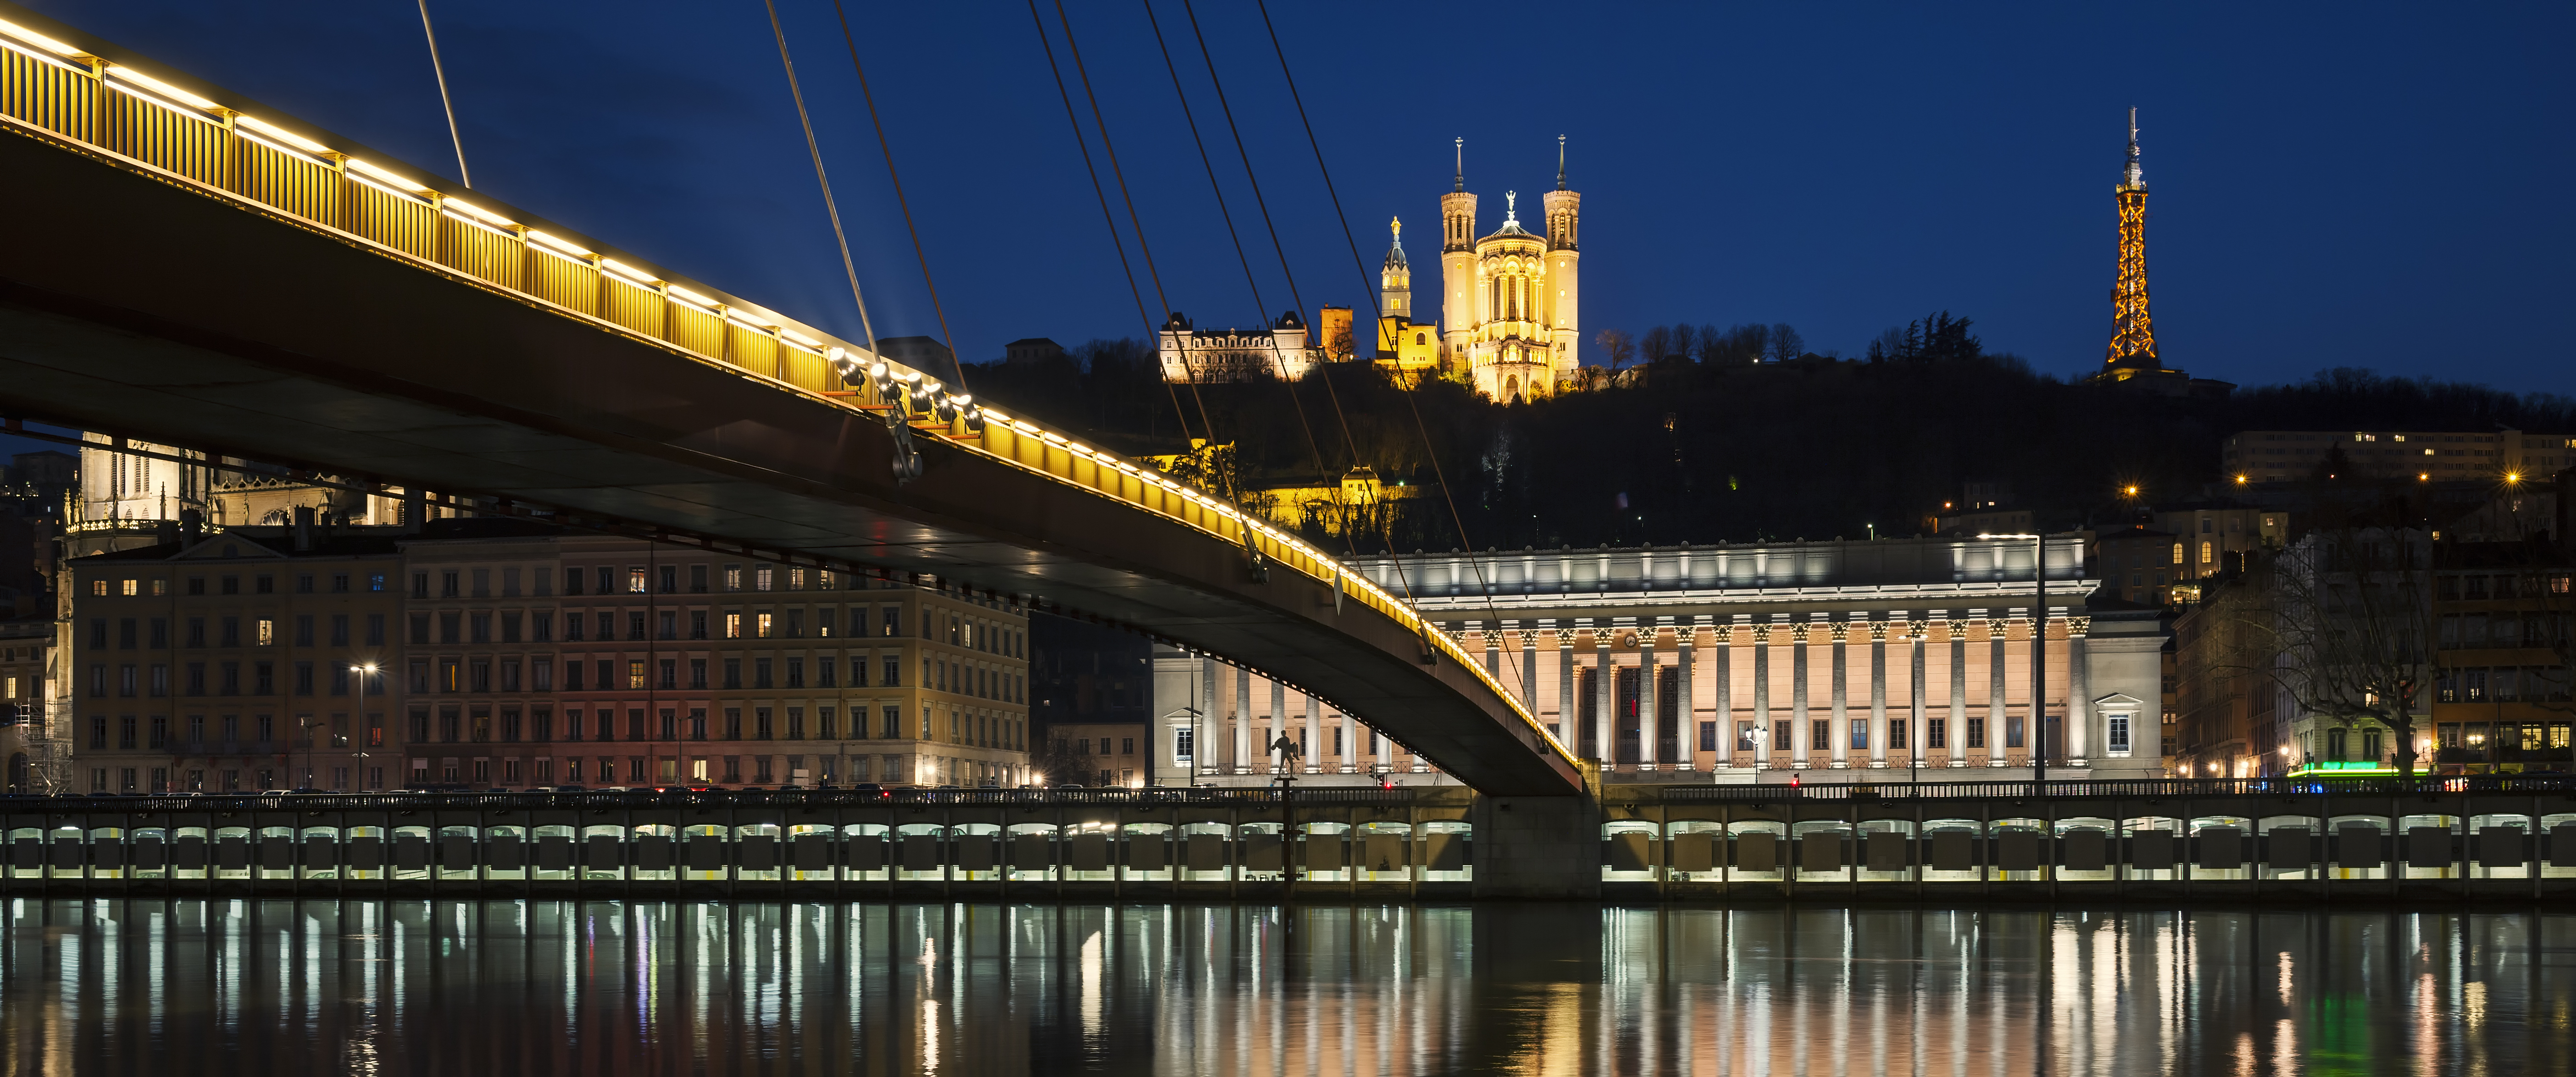 panoramic-view-of-saone-river-by-night-lyon